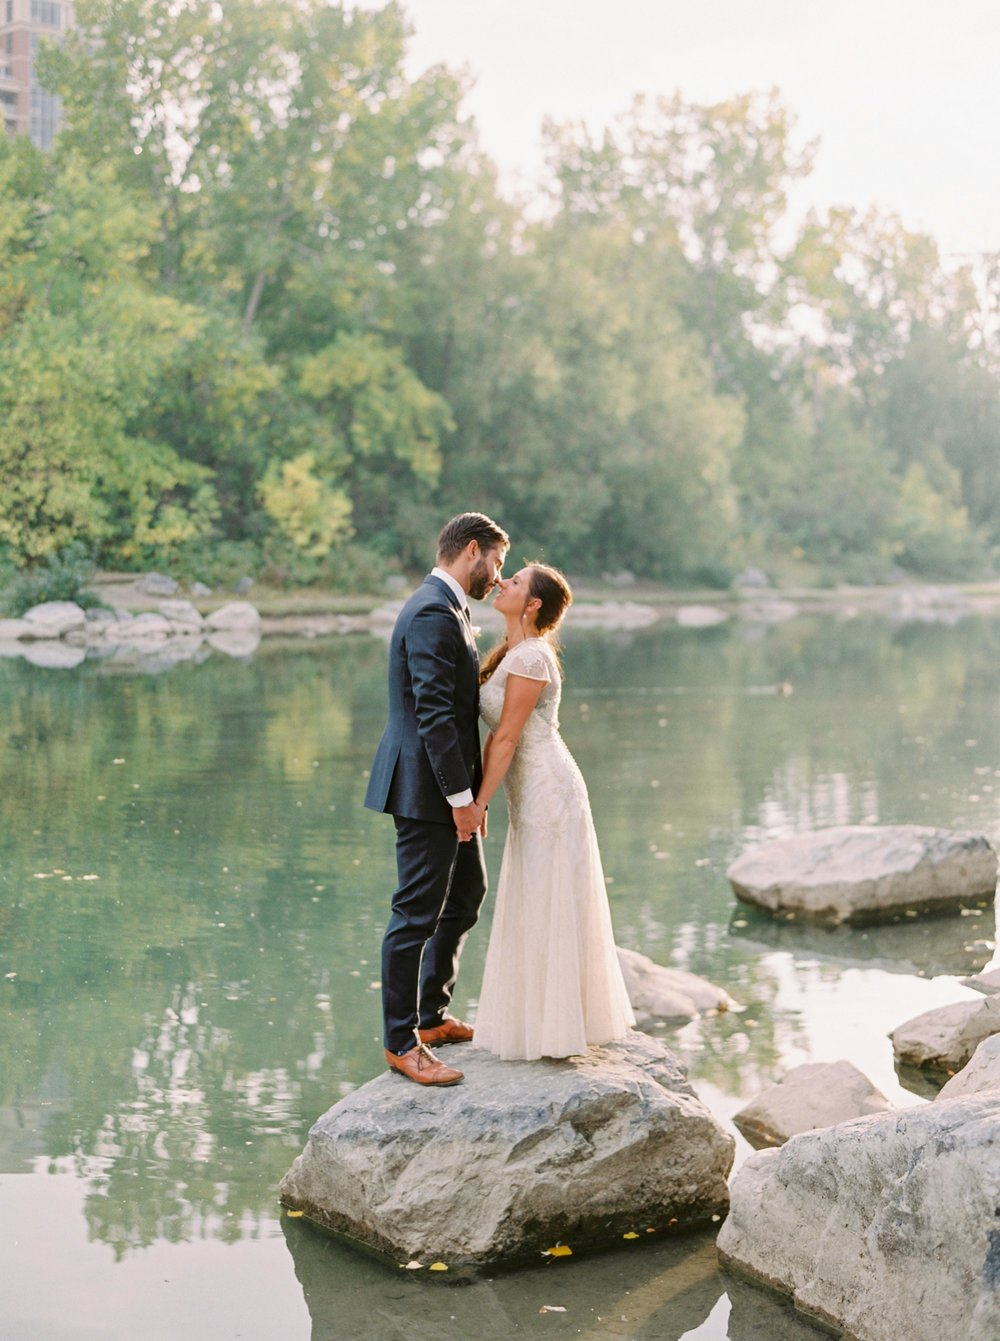 Calgary wedding photographers | fine art film | Justine Milton Photography | wedding inspiration | wedding dress | bride and groom portraits | river